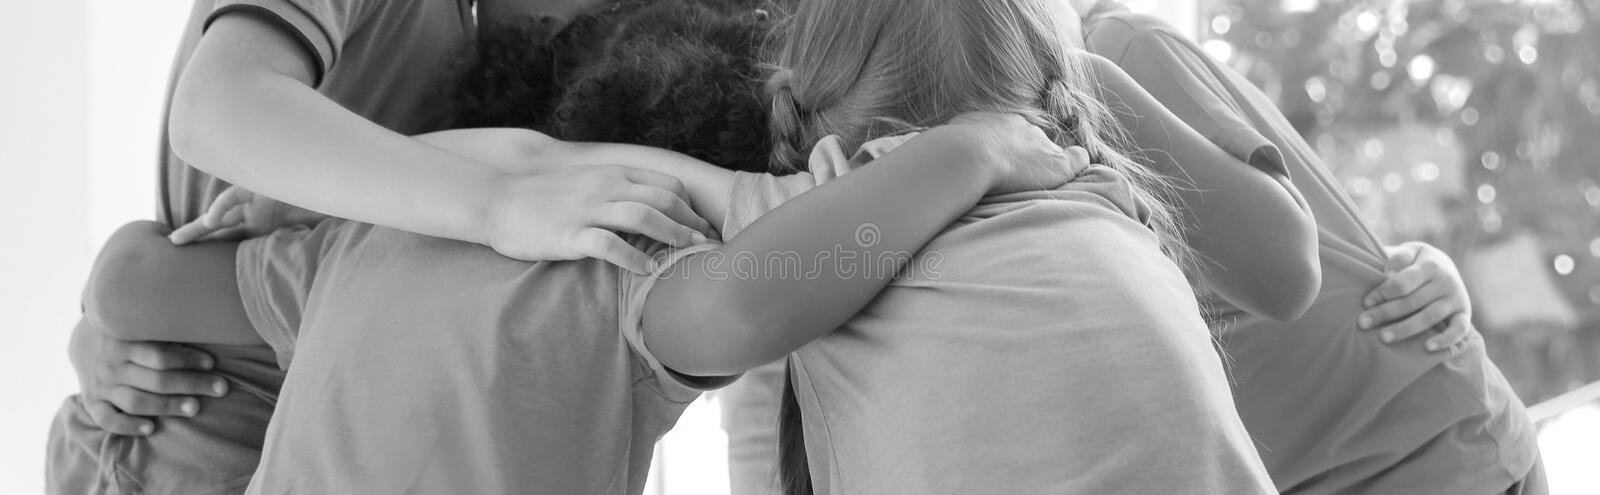 Little children making circle with hands around each other indoors. royalty free stock photo